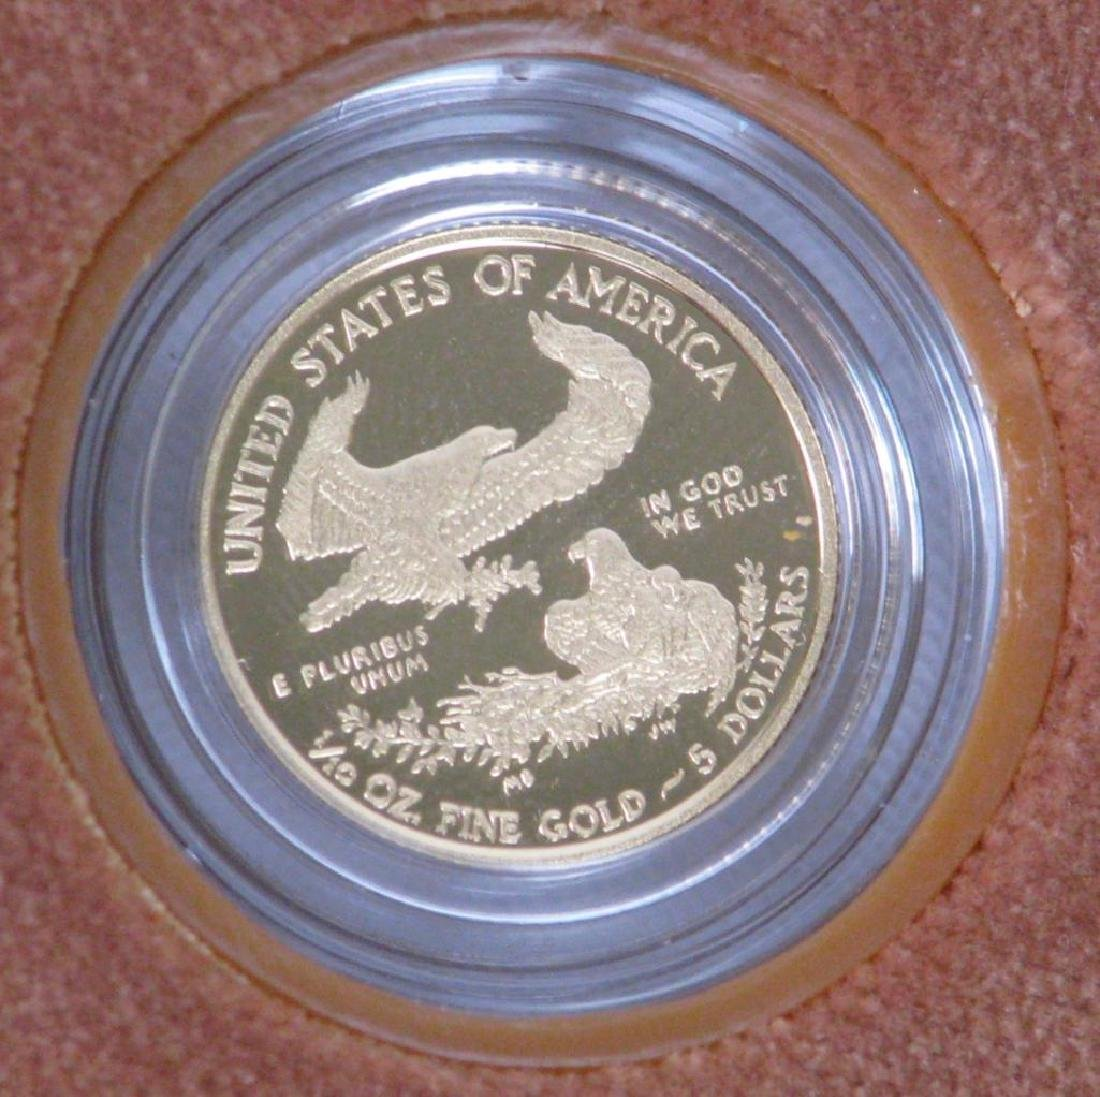 2016 American Eagle Gold Proof Coin - 2